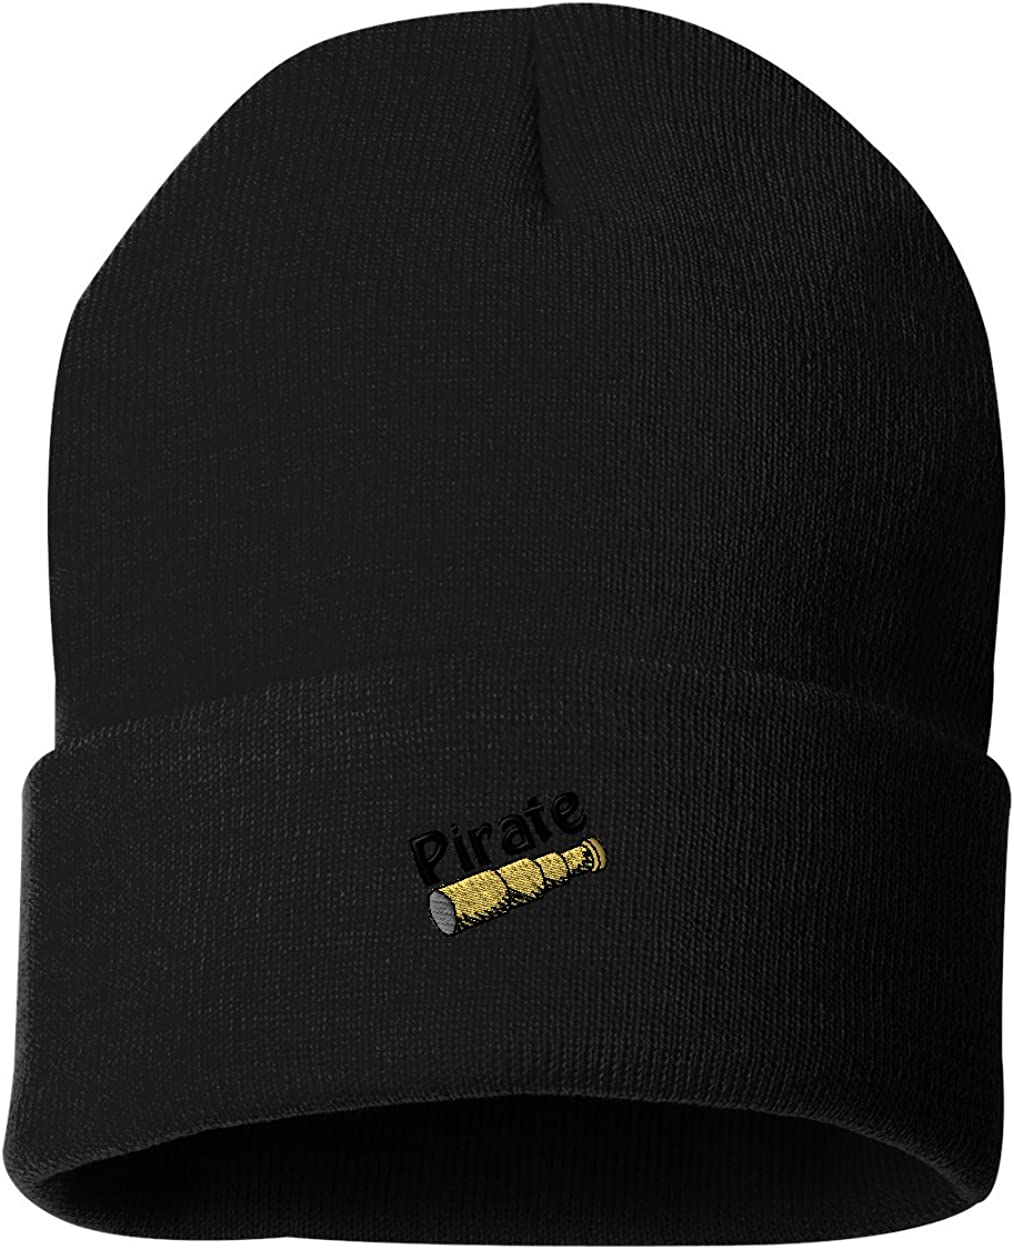 Telescope/ Custom Personalized Embroidery Embroidered Beanie